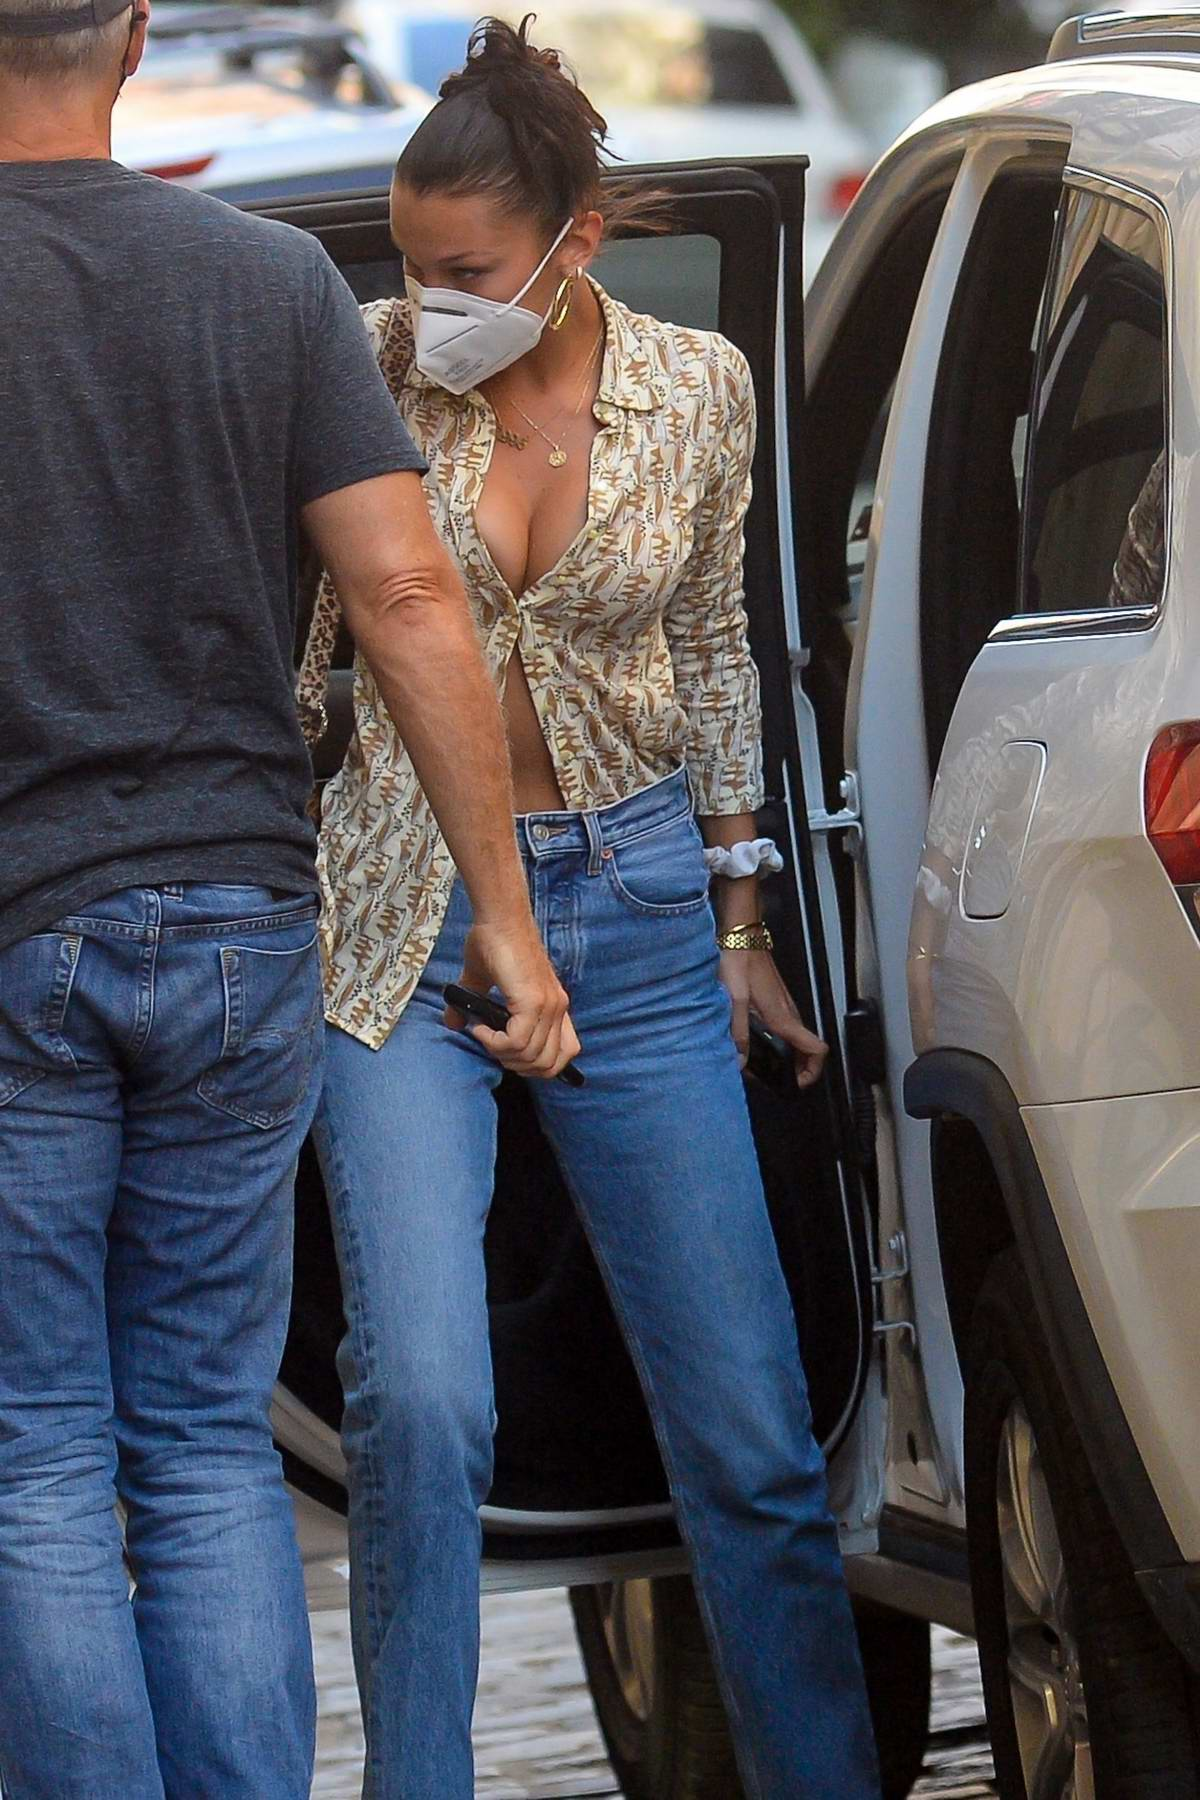 Bella Hadid looks stylish in a retro-style shirt and jeans while out in downtown Manhattan, New York